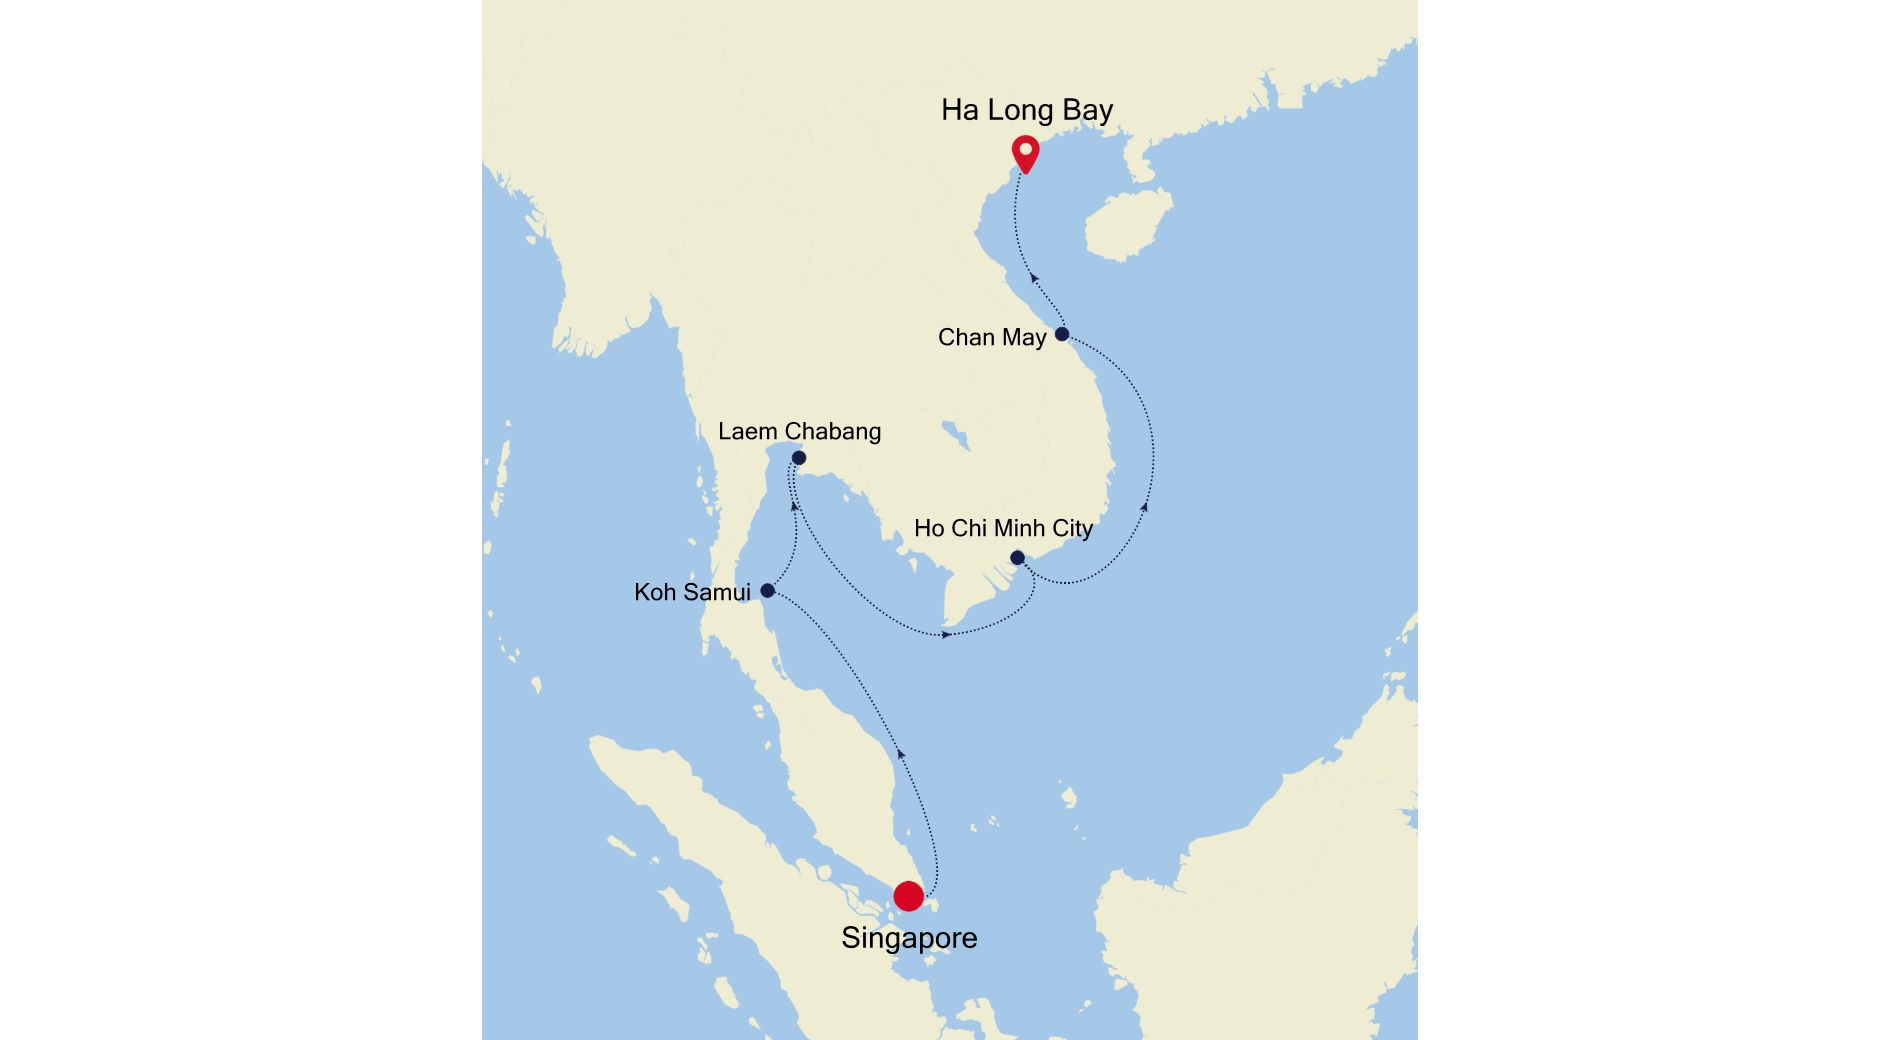 5935P - Singapore to Ha Long Bay